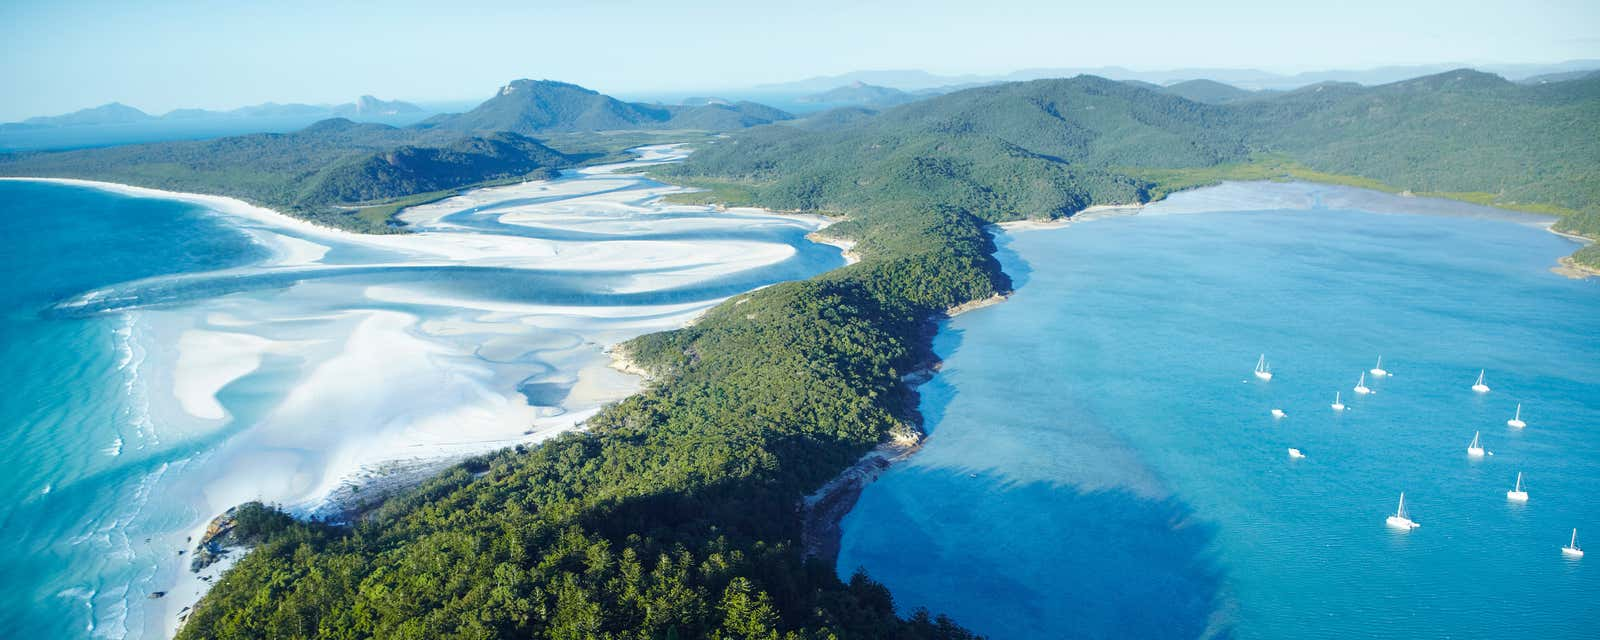 An aerial view of Whitsunday Island, Australia.